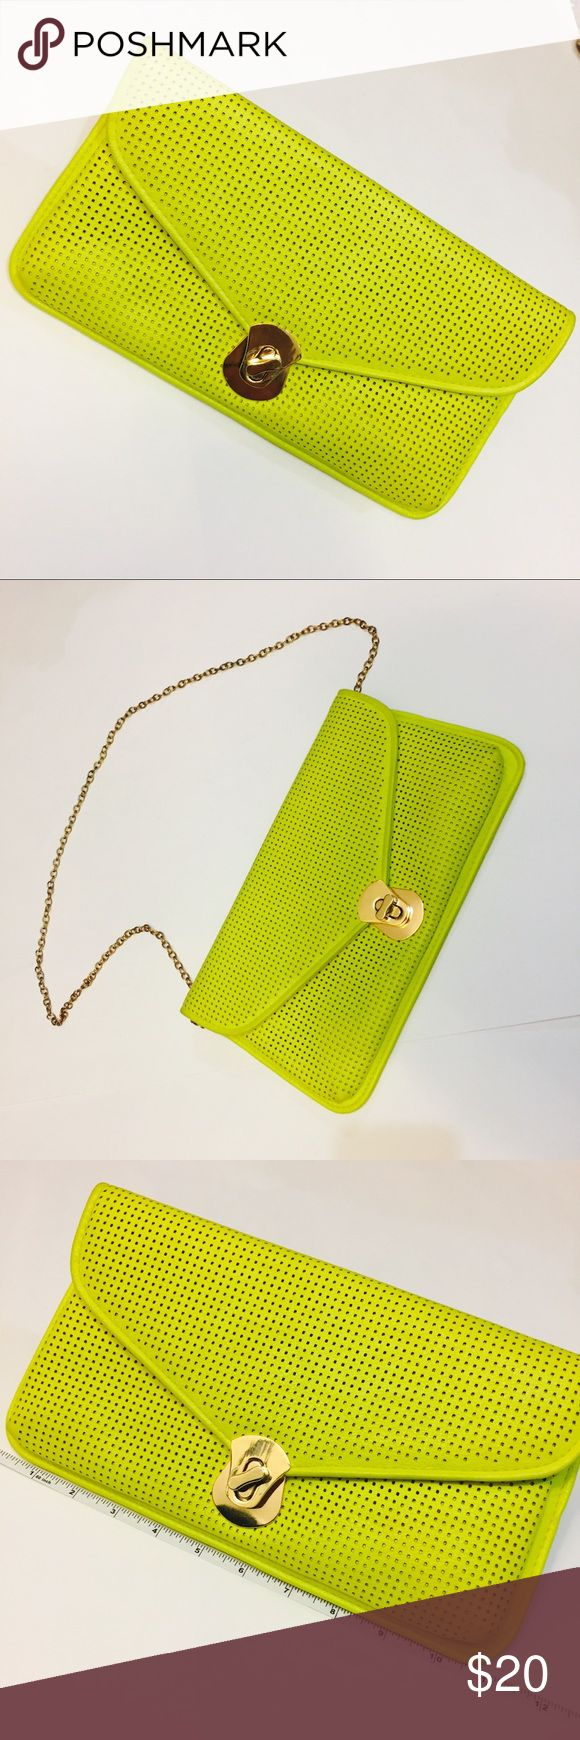 Highlighter Neon Green Yellow Clutch with Strap Highlighter Neon Green Yellow Clutch with Strap Bags